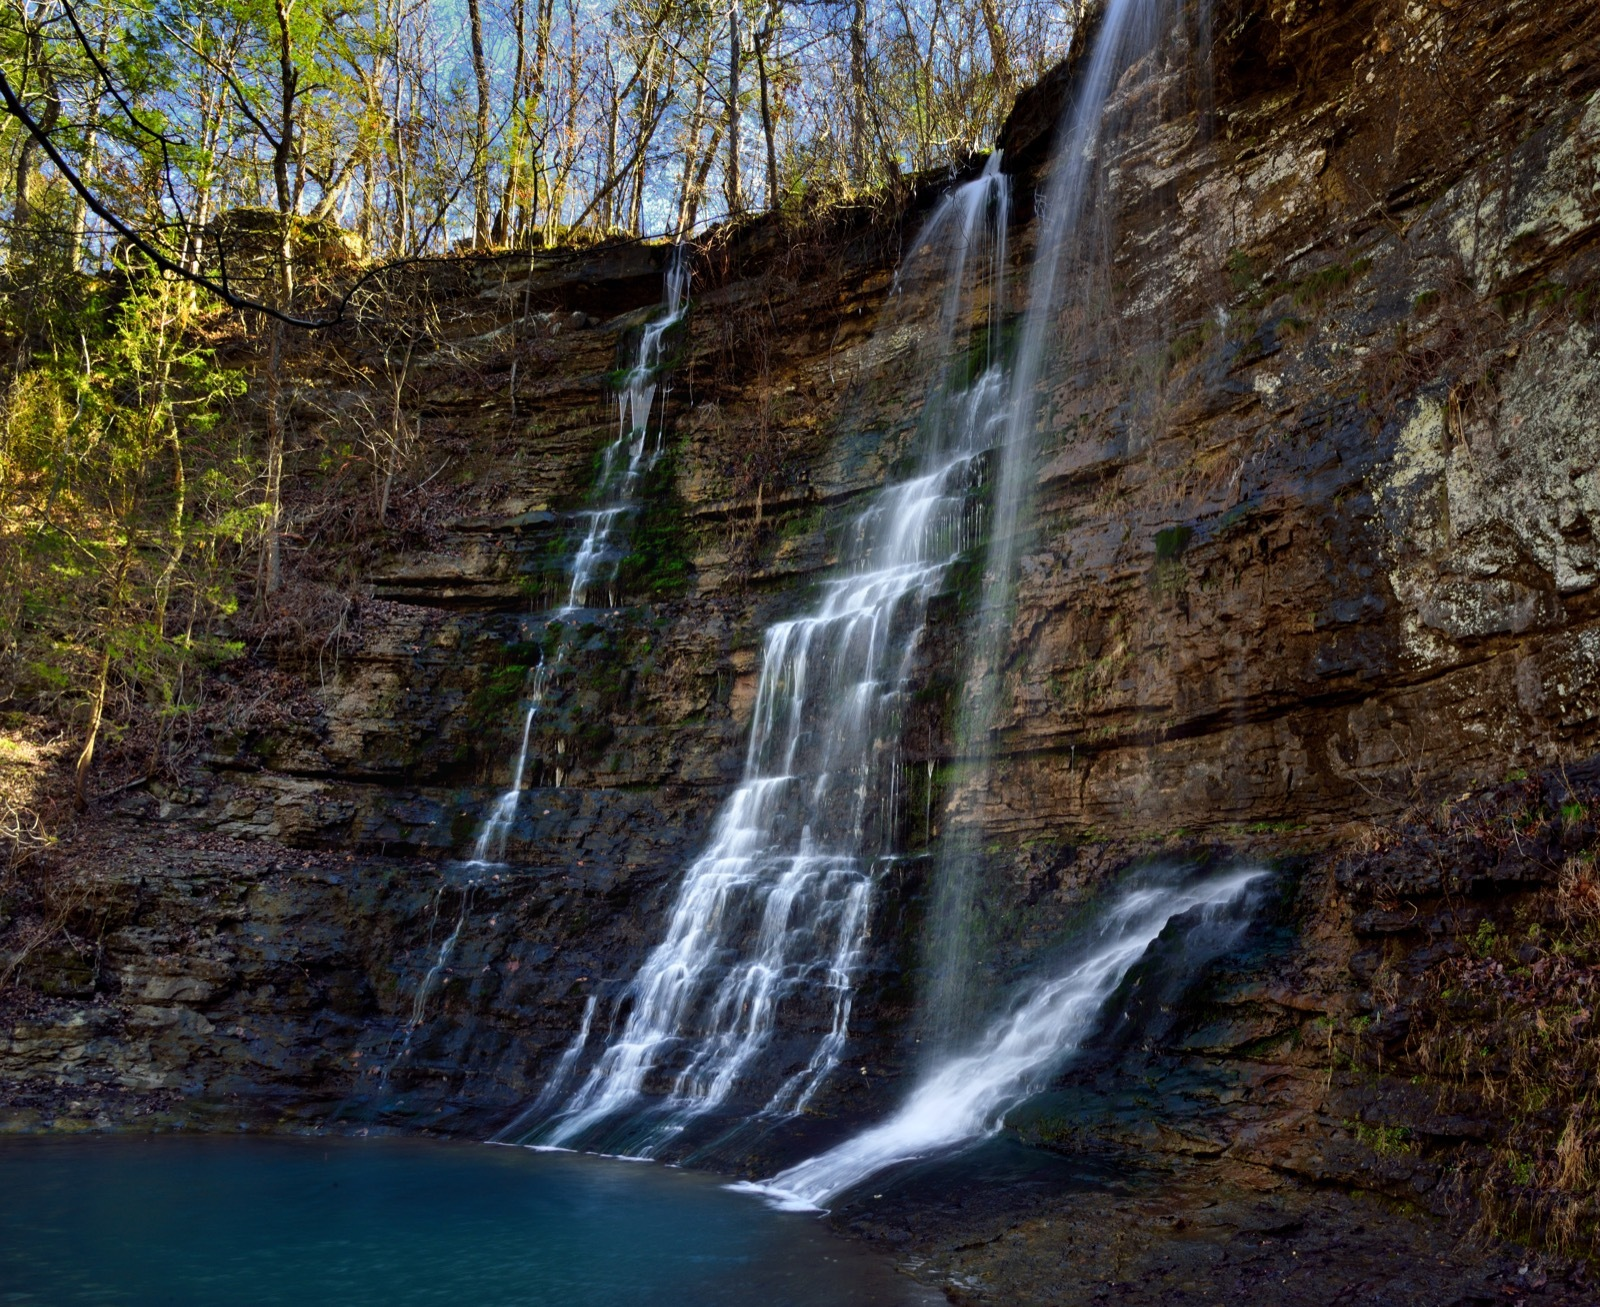 triple-falls-in-Arkansas.jpg?mtime=20200115141705#asset:107686